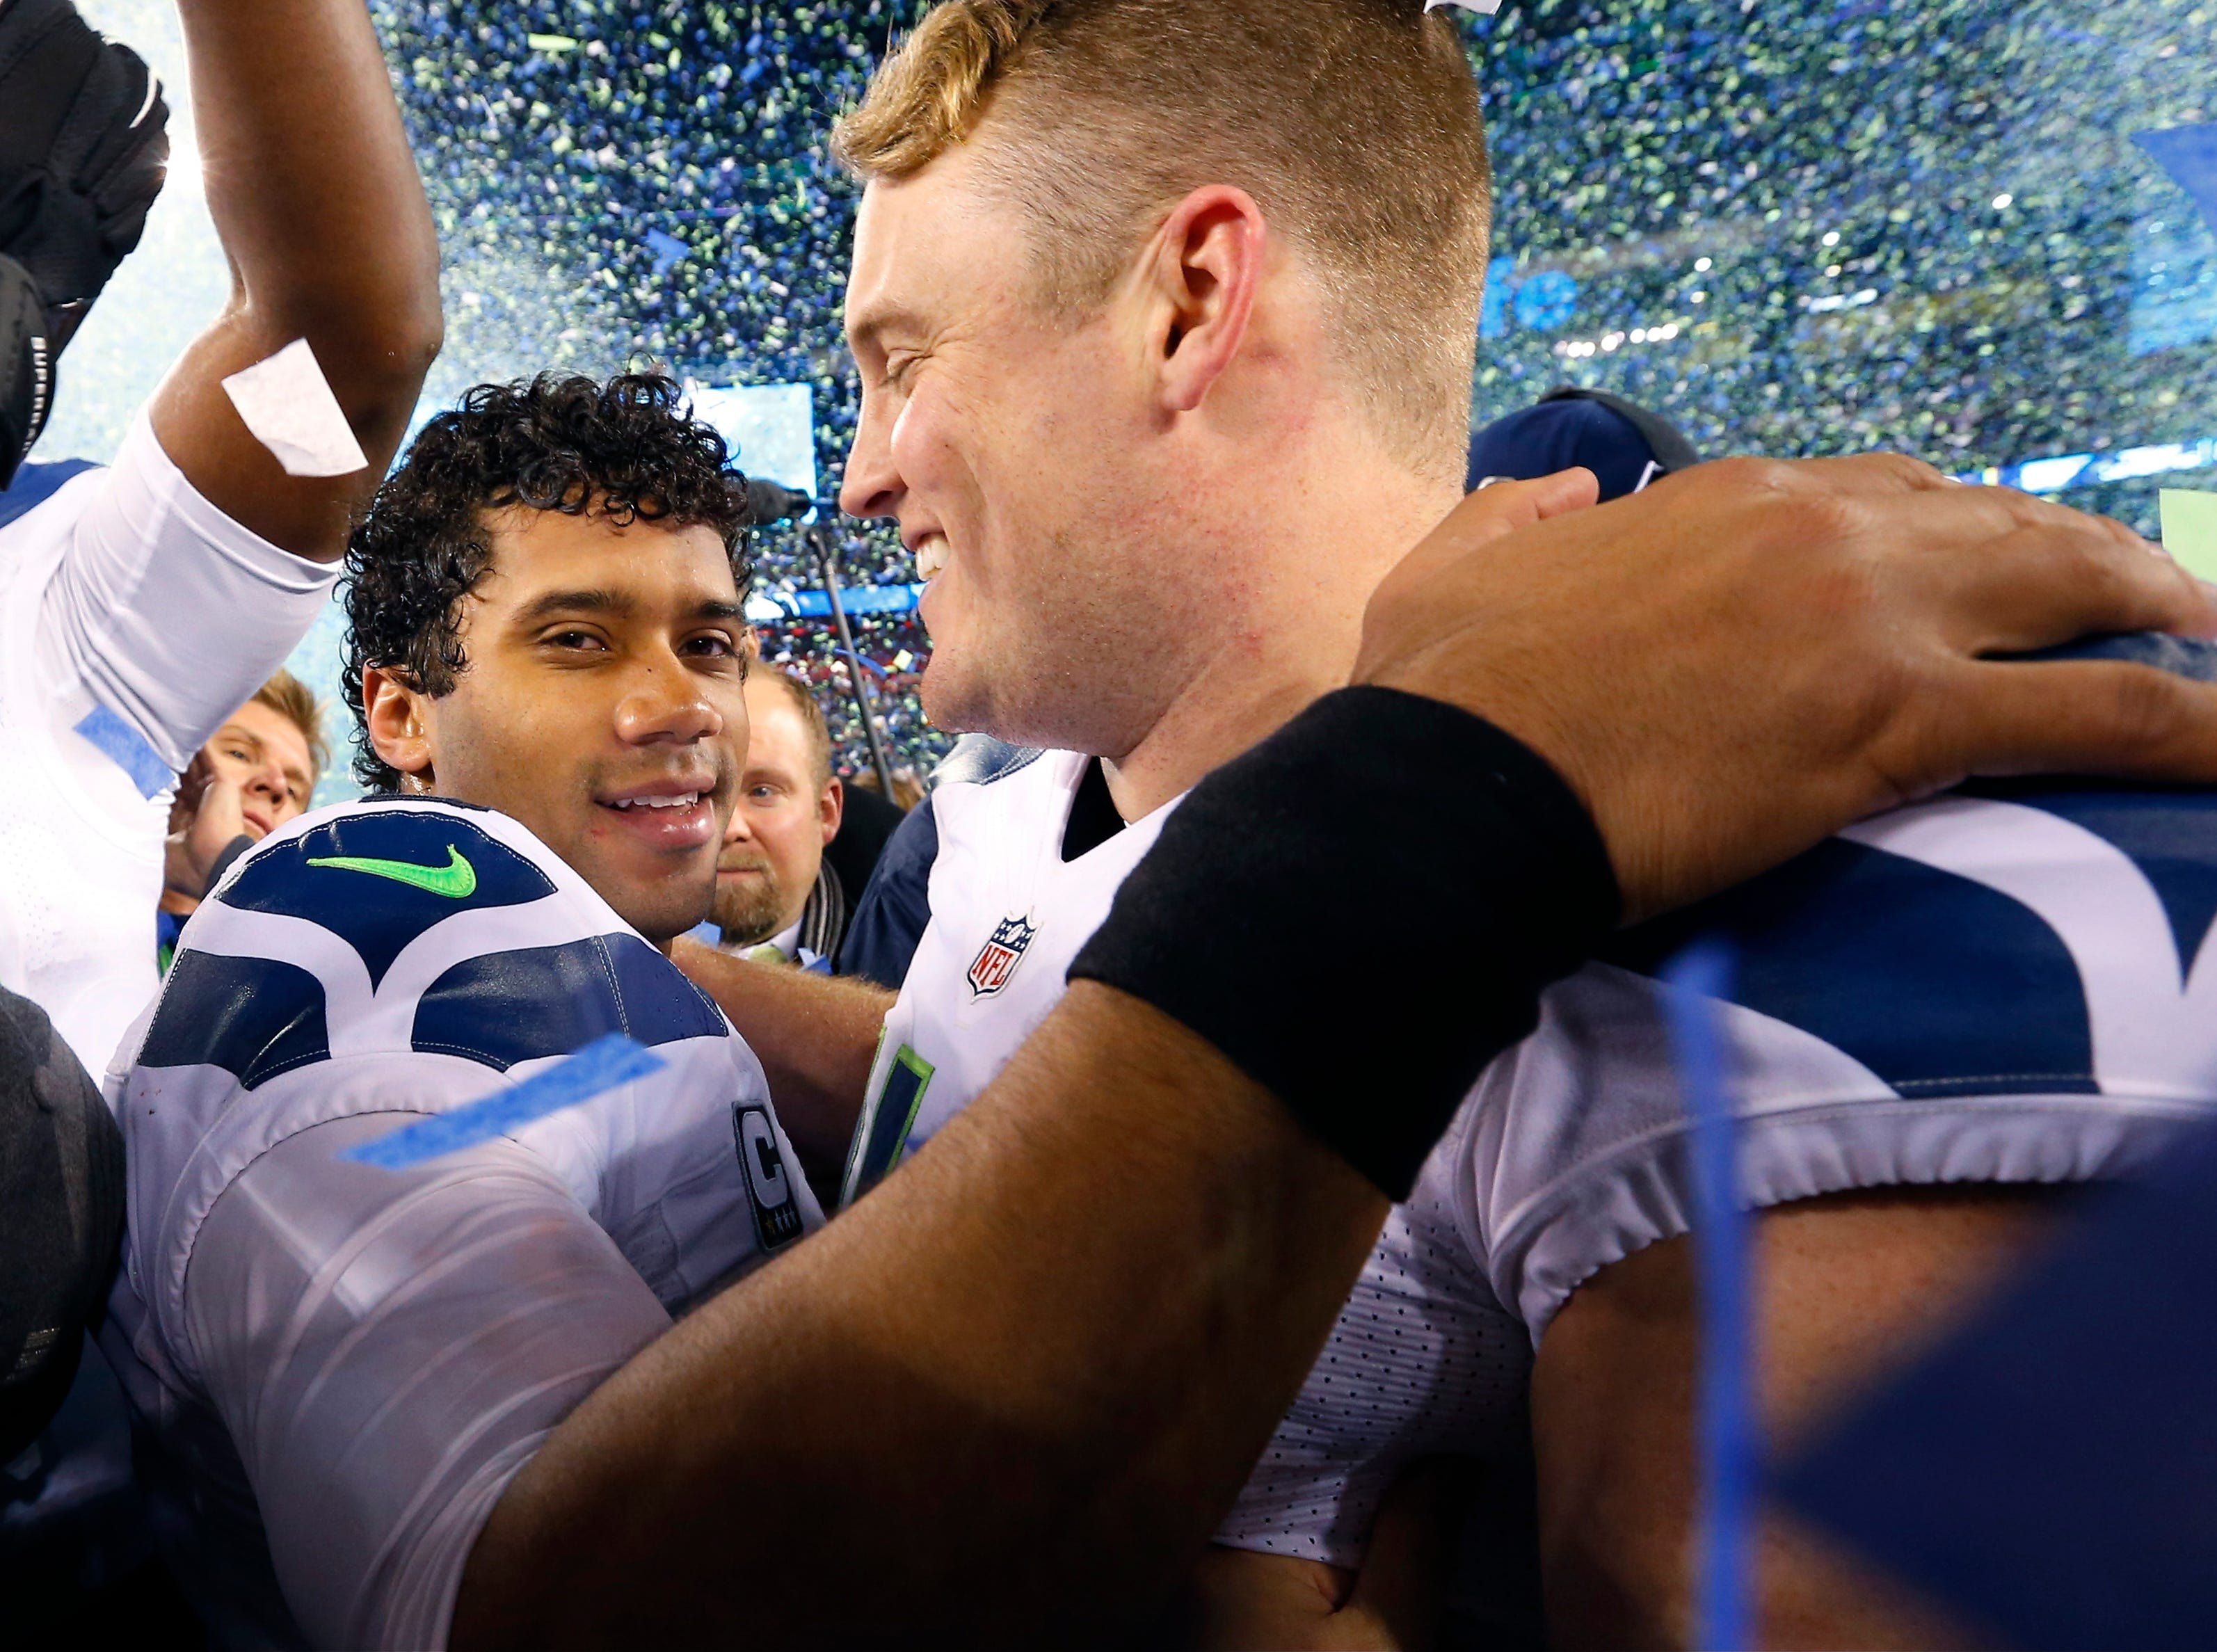 Seattle Seahawks' Russell Wilson, left, celebrates with teammate Clint Gresham after the NFL Super Bowl XLVIII football game Sunday, Feb. 2, 2014, in East Rutherford, N.J. The Seahawks won 43-8. (AP Photo/Paul Sancya)